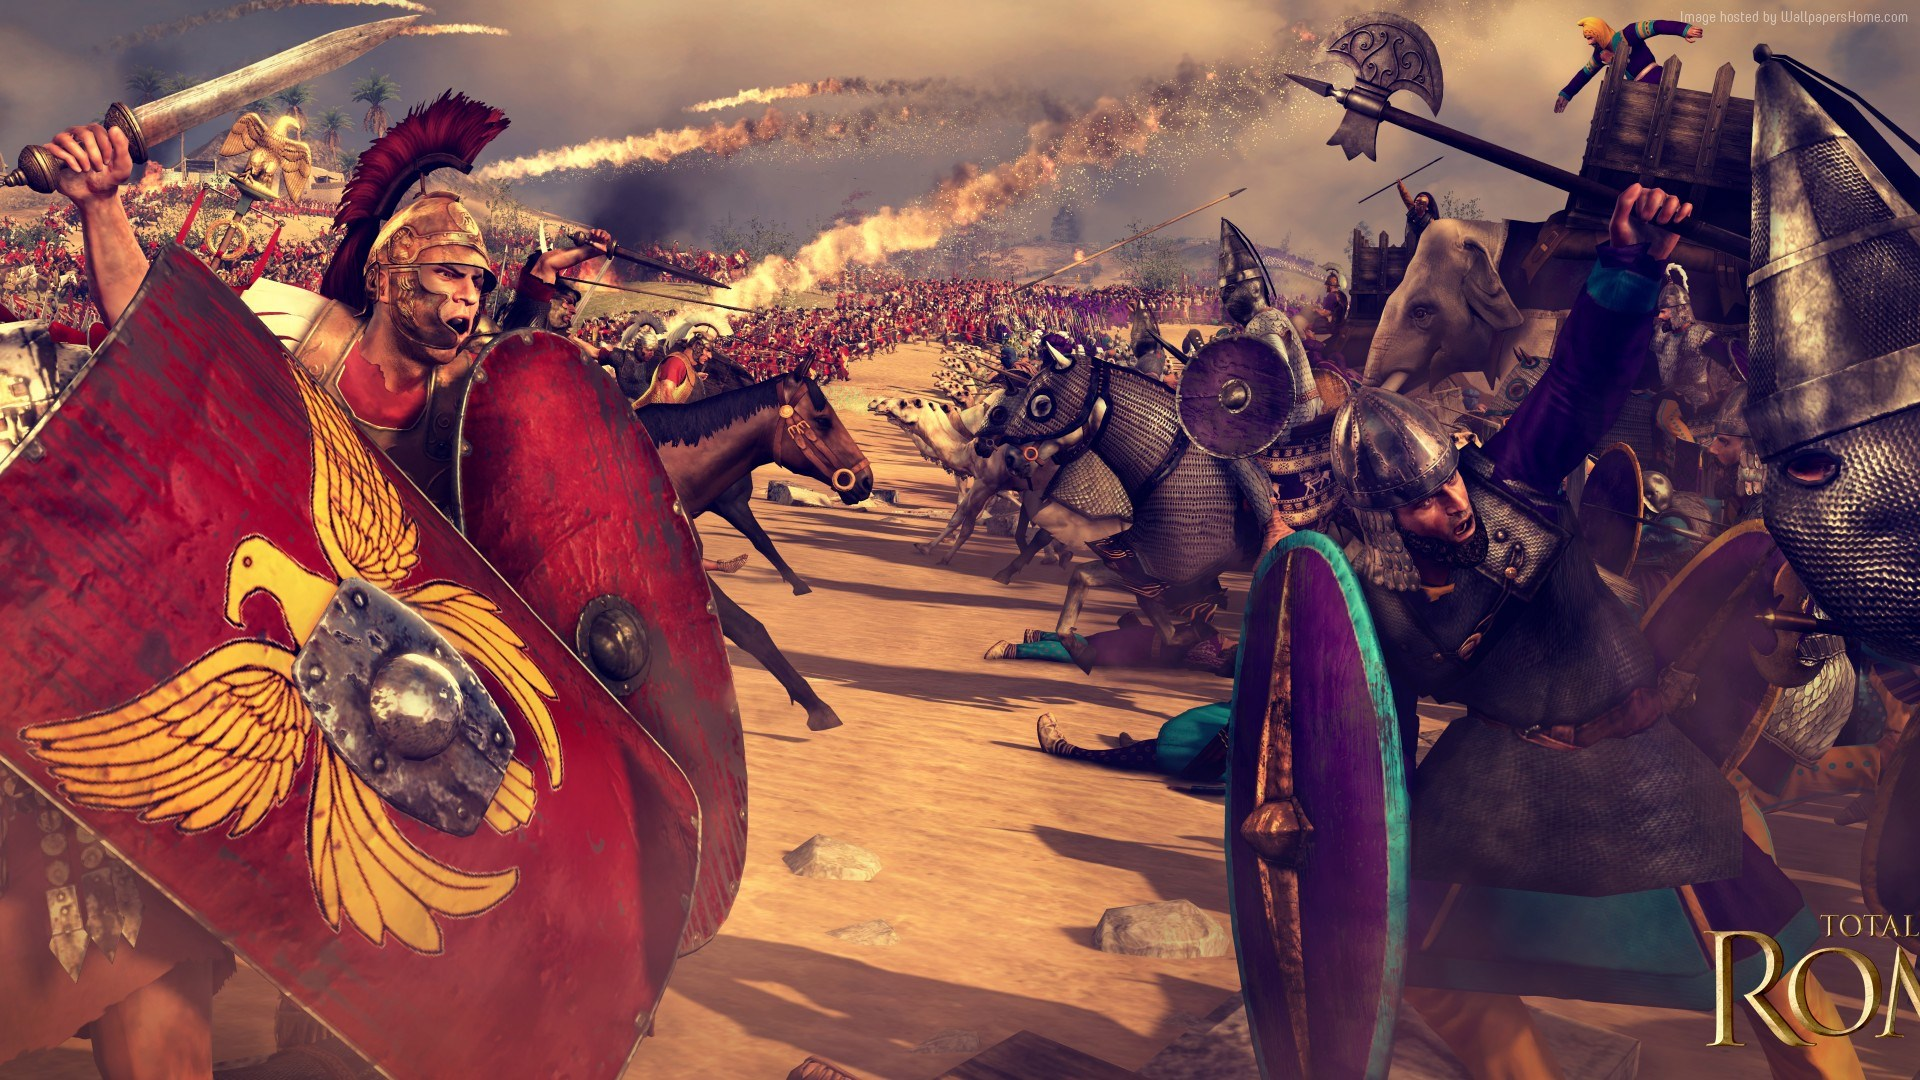 Total War Rome Ii Wallpaper Games Total War Rome 2 4k 1494513